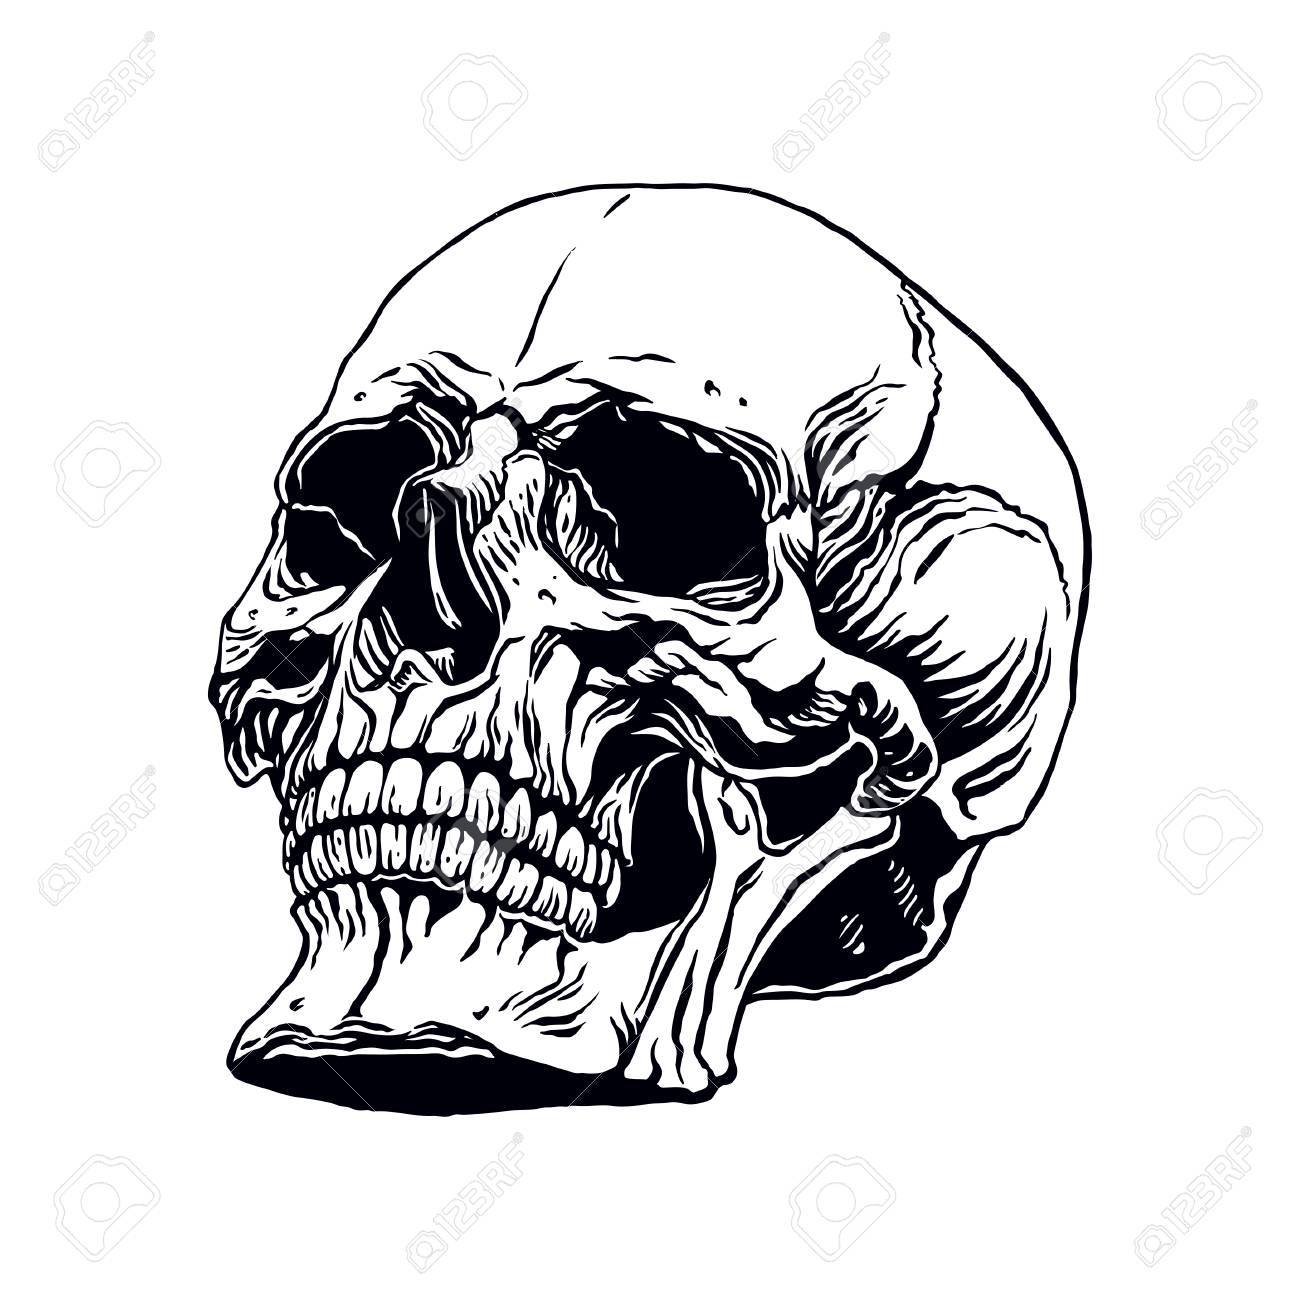 Hand Drawn Illustration Of Anatomy Human Skull With A Lower Jaw